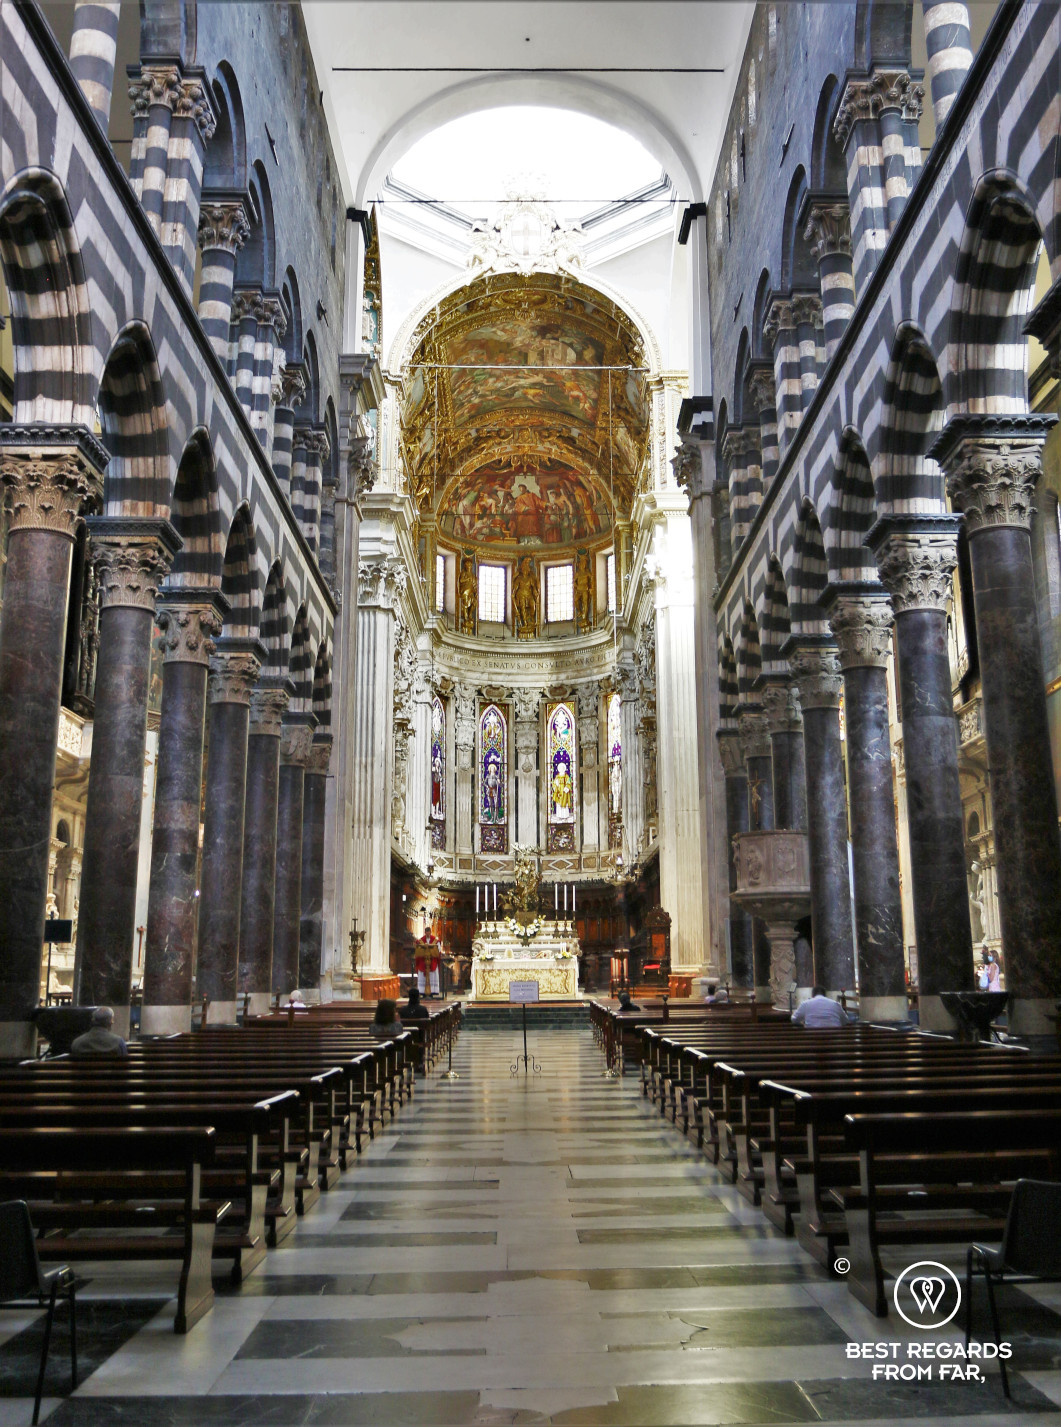 The majestic interior of the San Lorenzo Cathedral, Genoa, Liguria, Italy